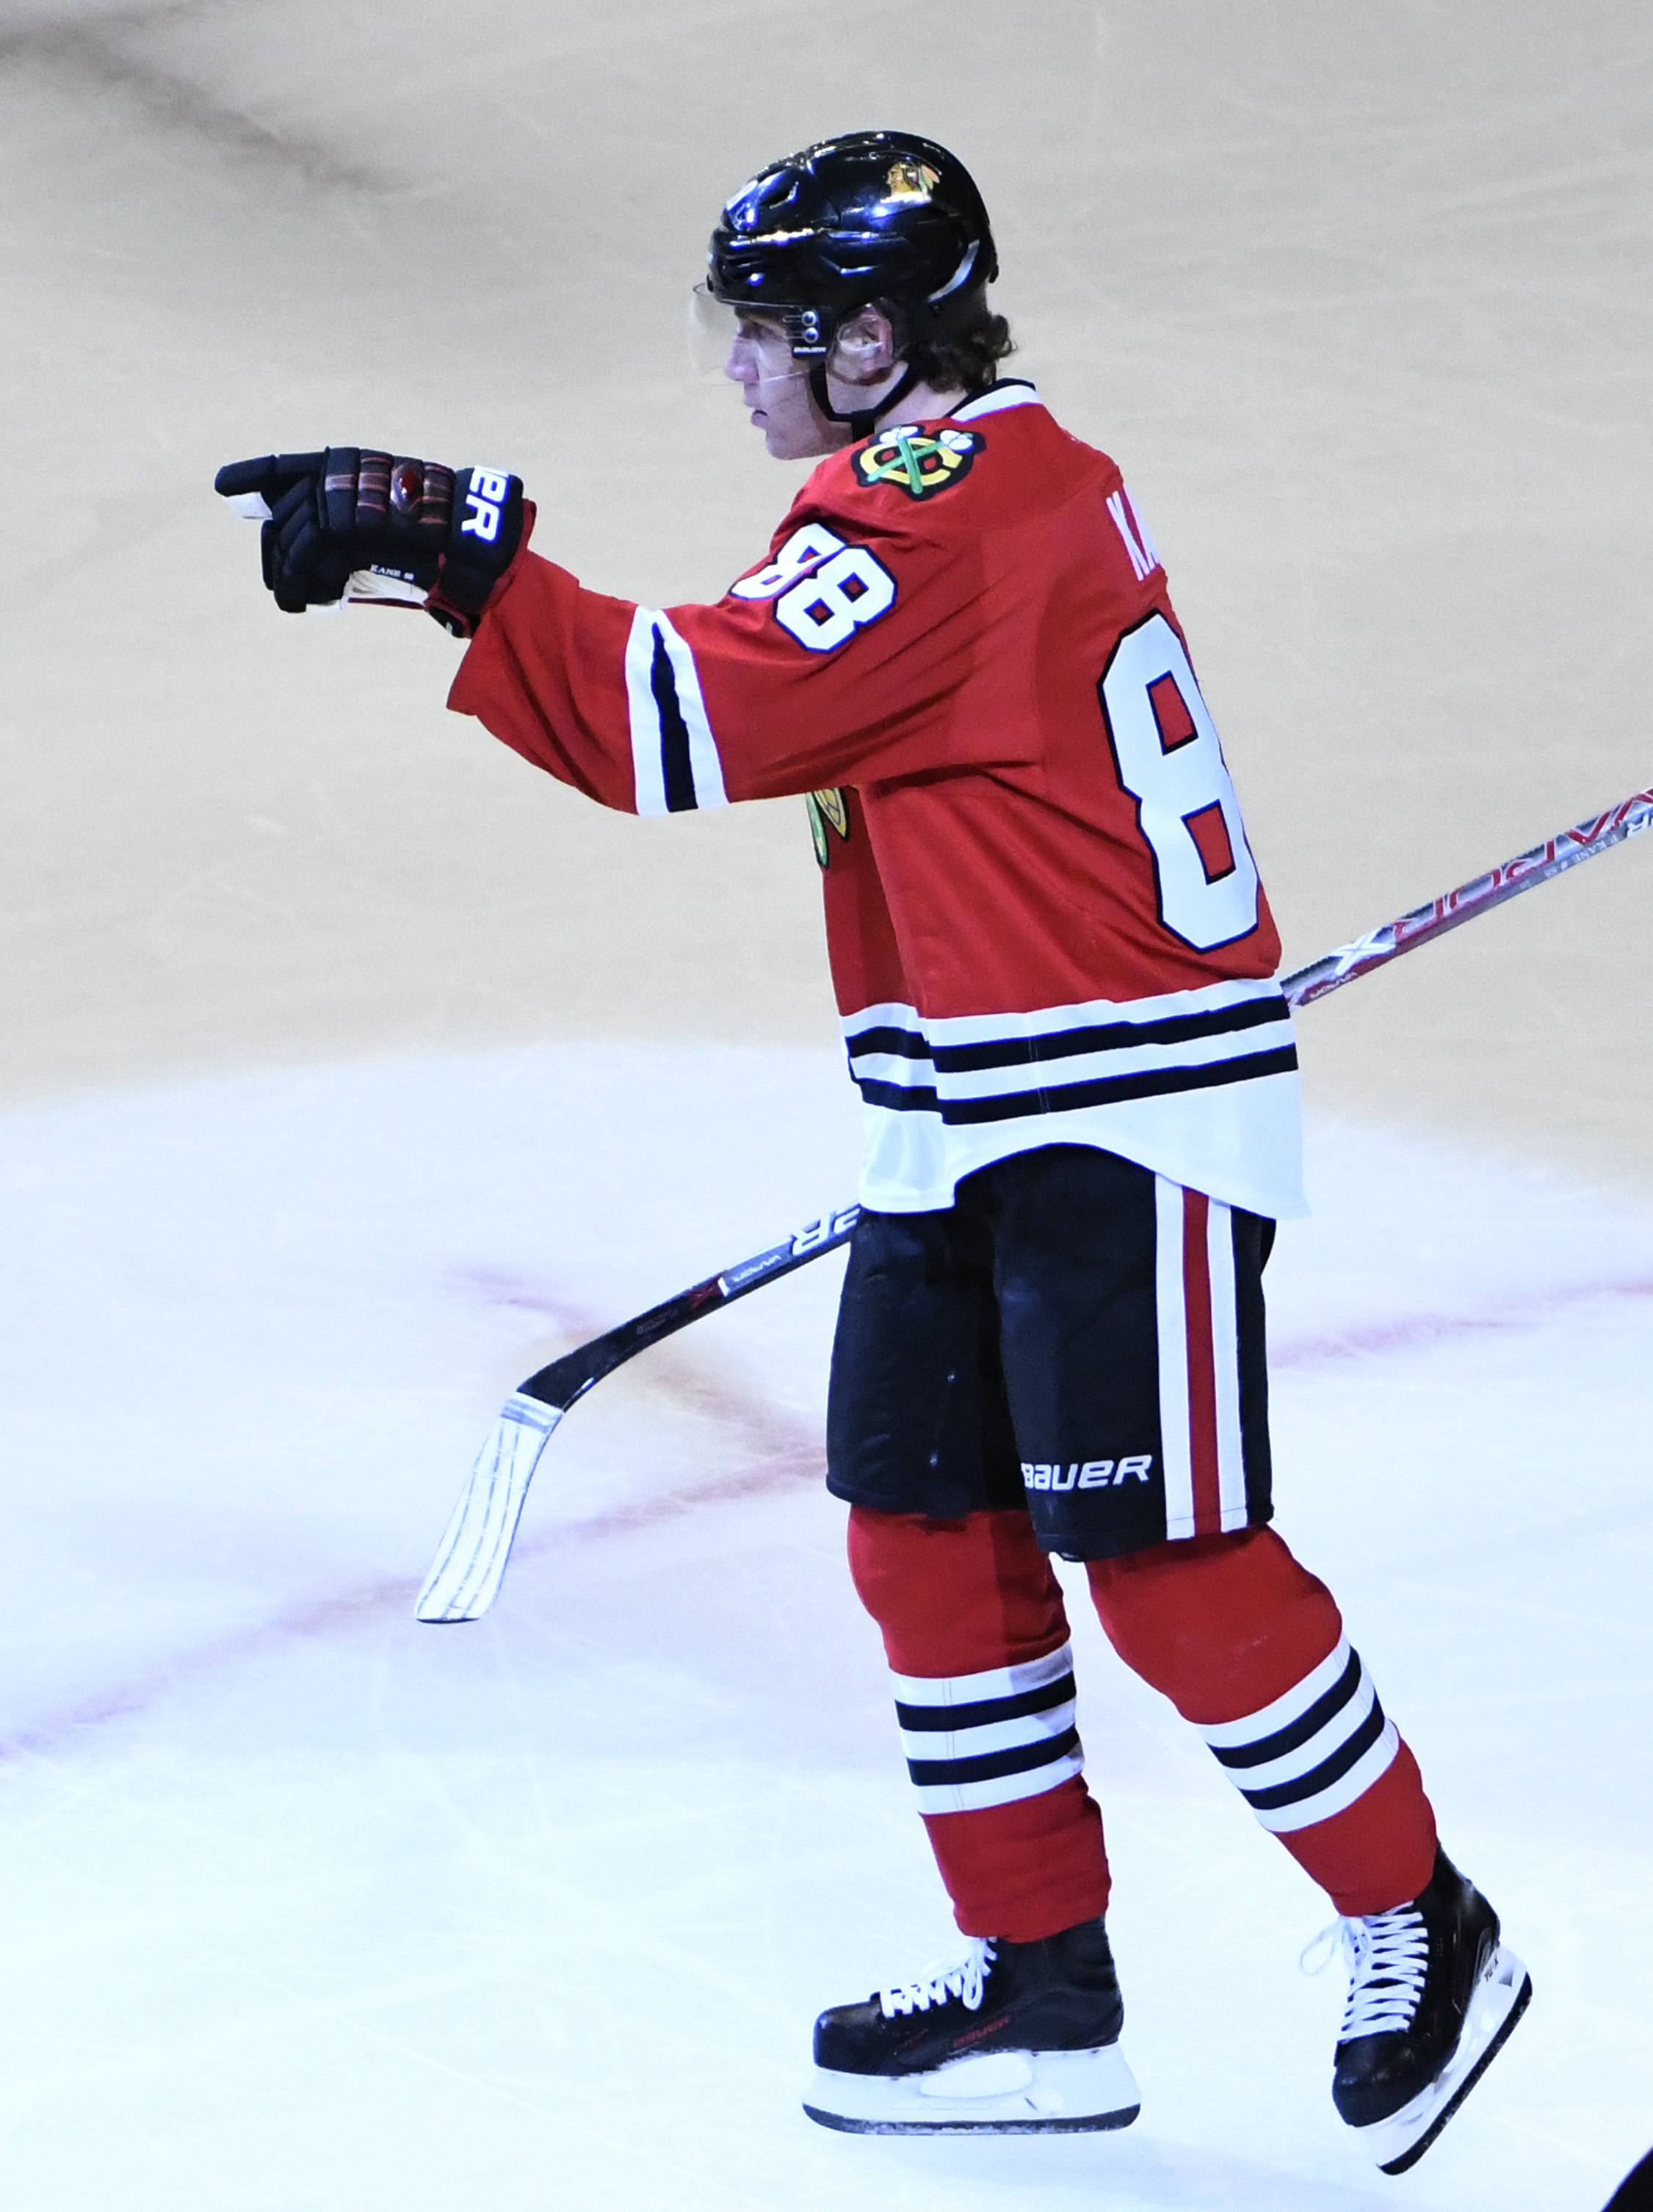 Fans were treated to a wildly entertaining 6-3 Chicago Blackhawks victory over Arizona at the United Center on Thursday. The Hawks won for the eighth time in nine games, getting a hat trick from Patrick Kane and additional tallies from Nick Schmaltz, Ryan Hartman and Michal Rozsival.